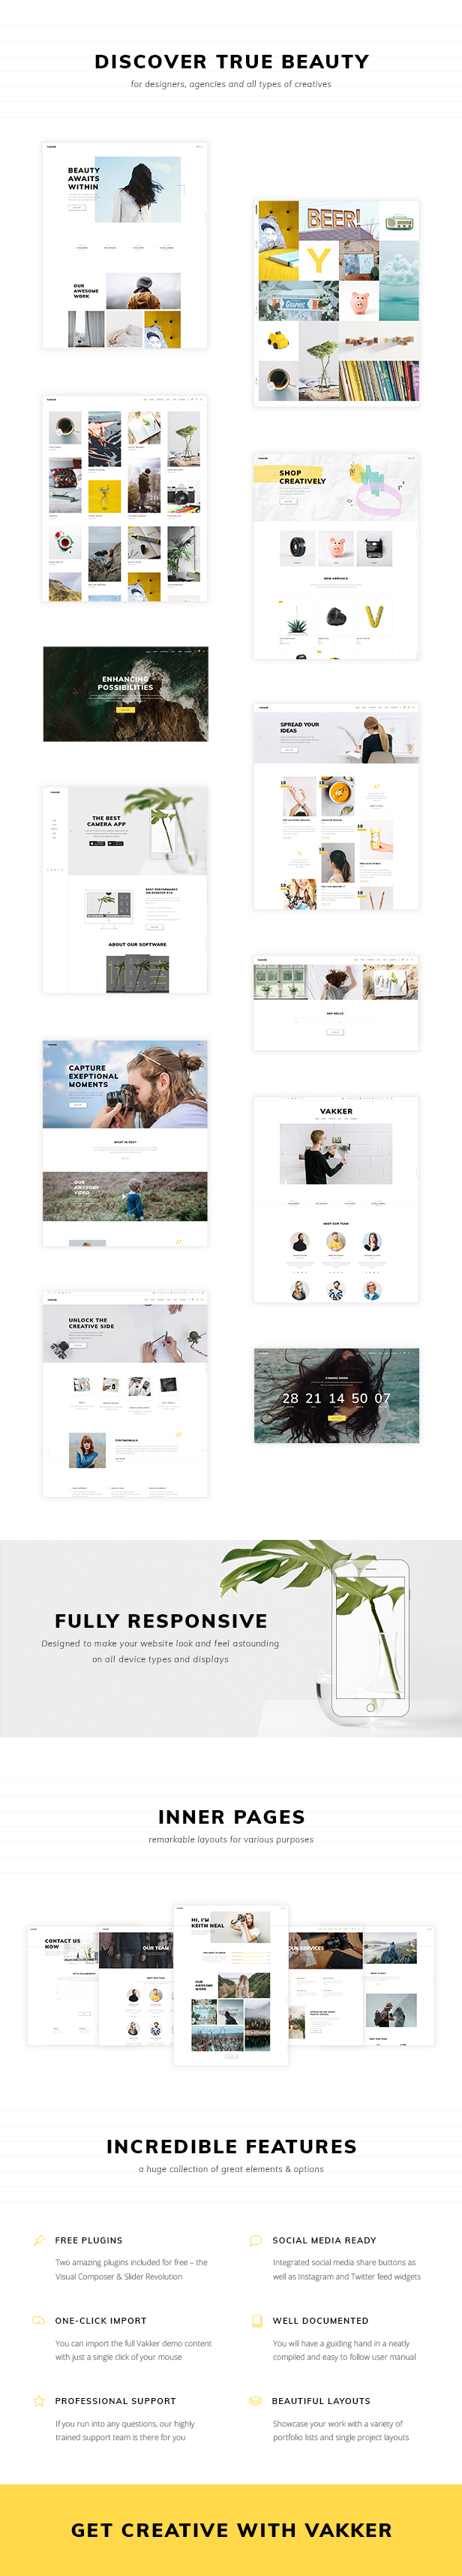 Vakker - A Creative Theme for Designers and Agencies - 1